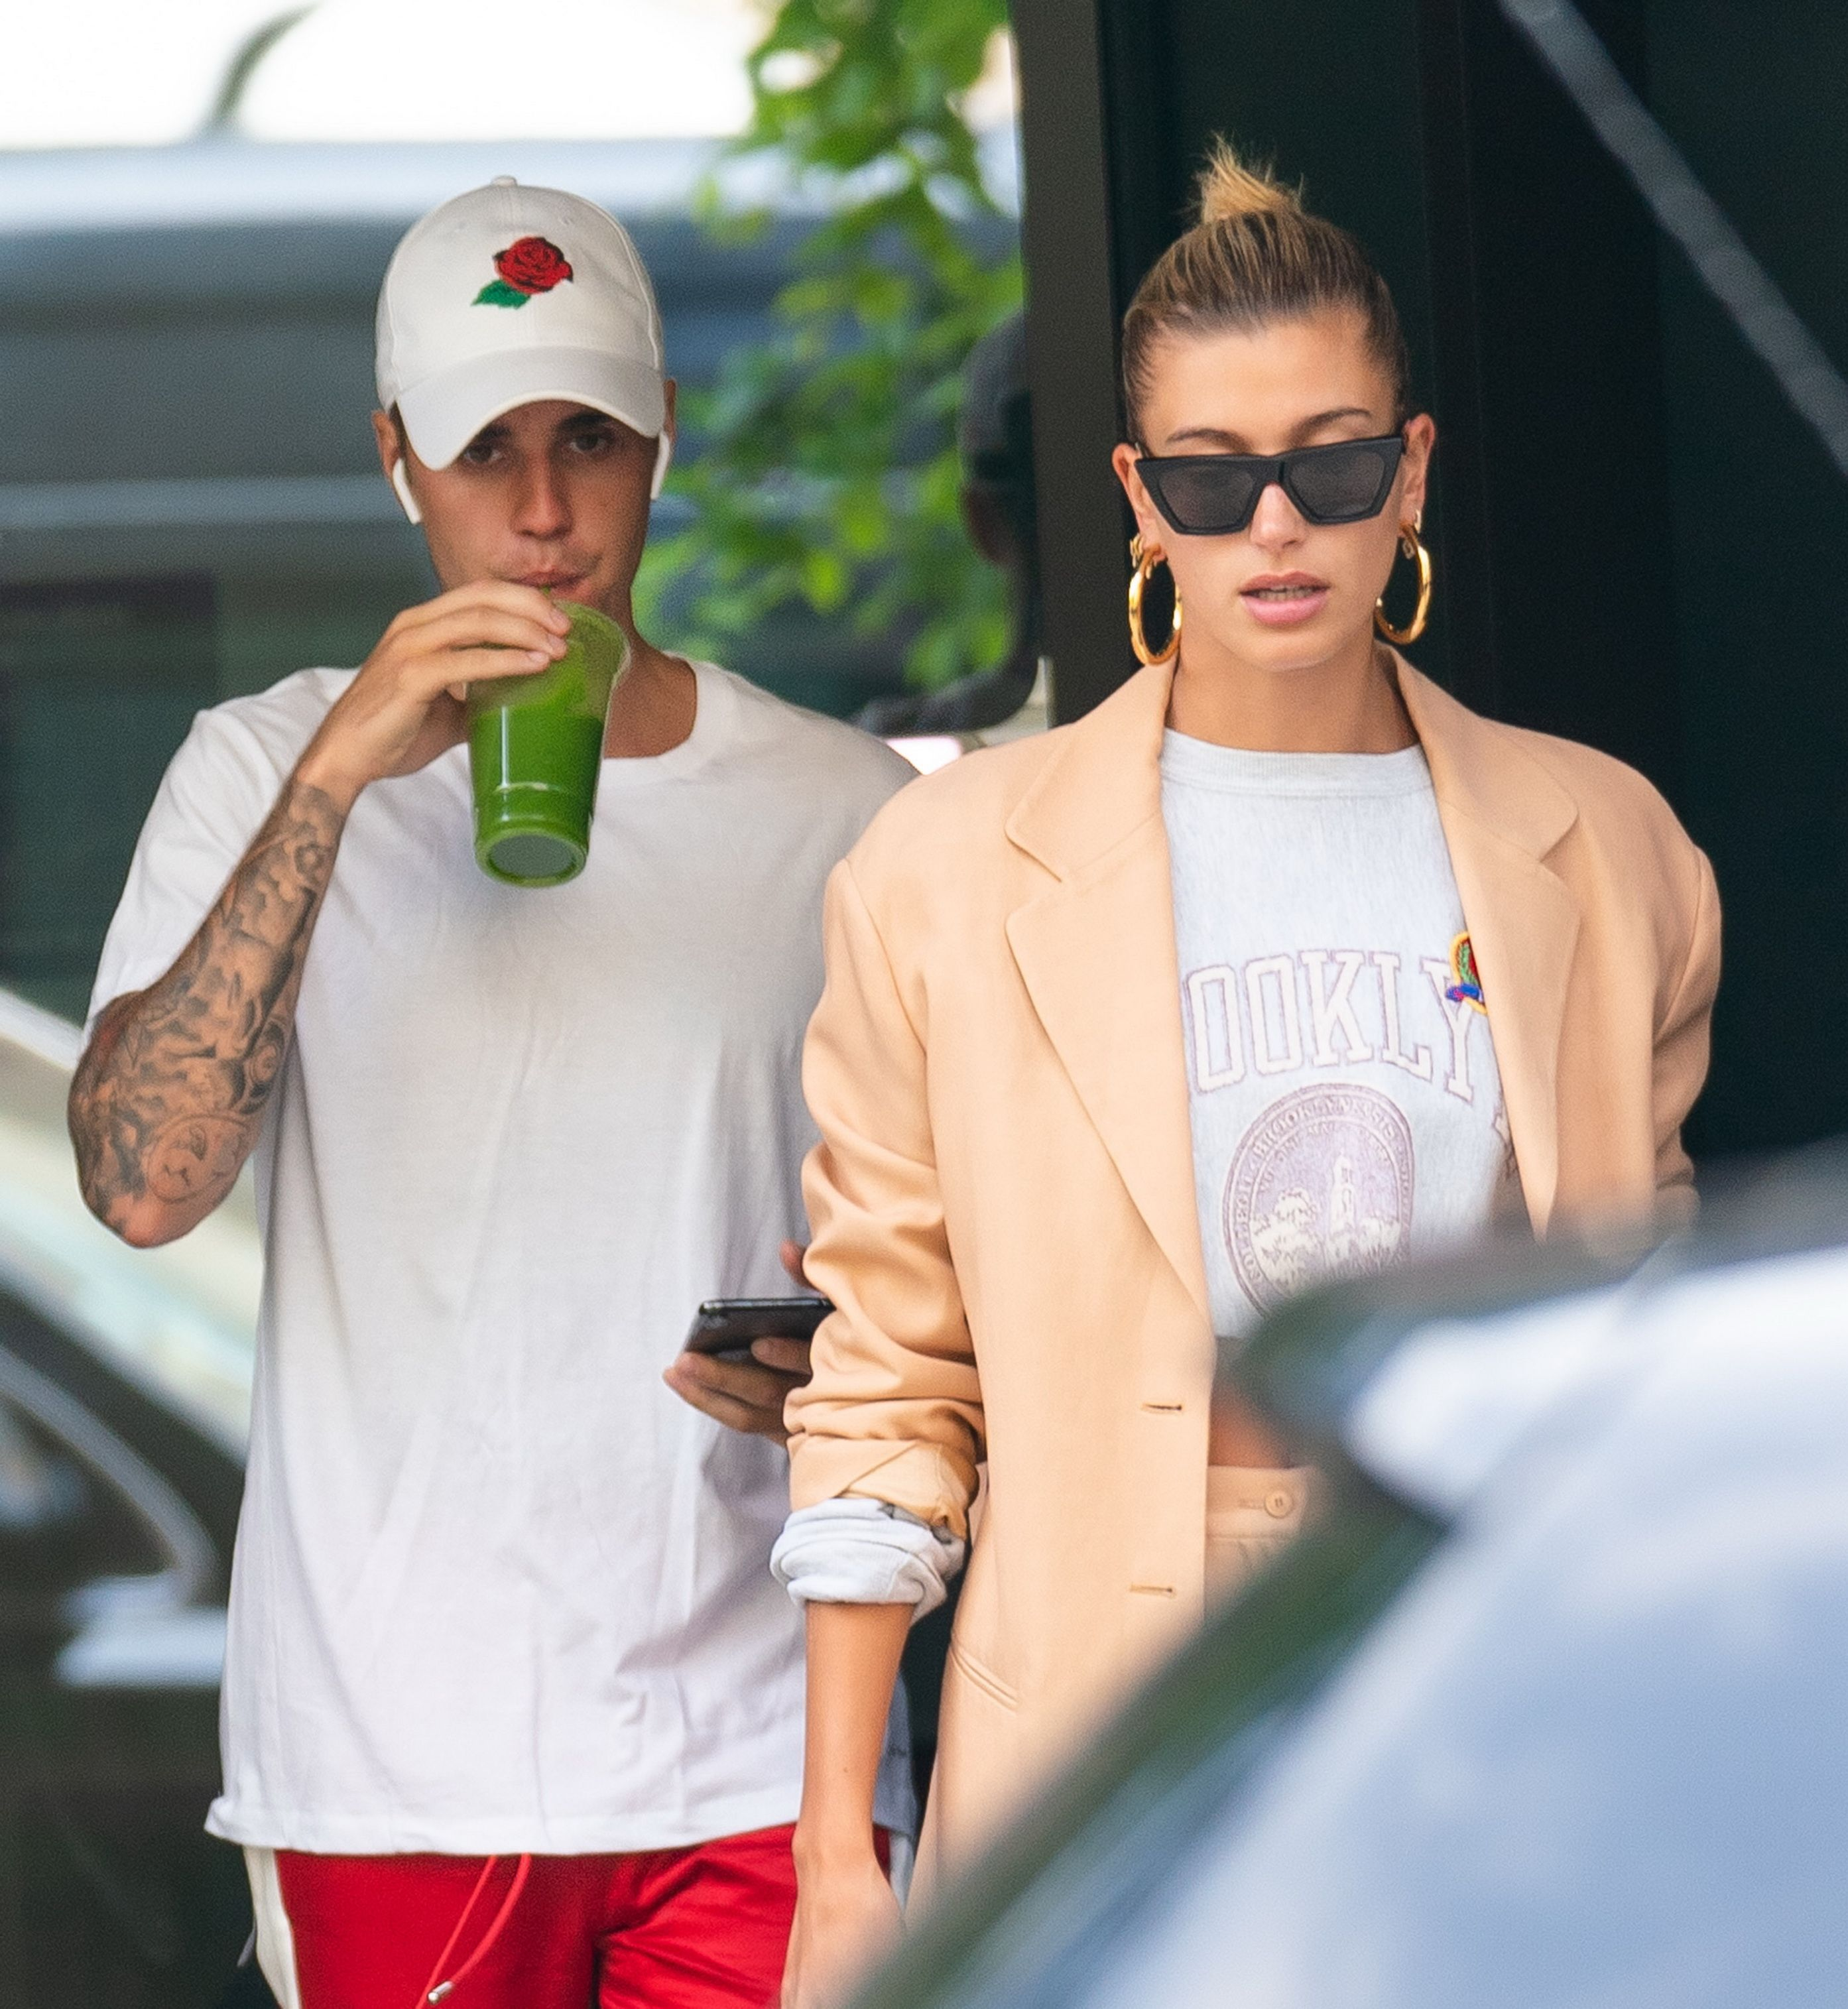 Justin Bieber and Hailey Baldwin on an outing